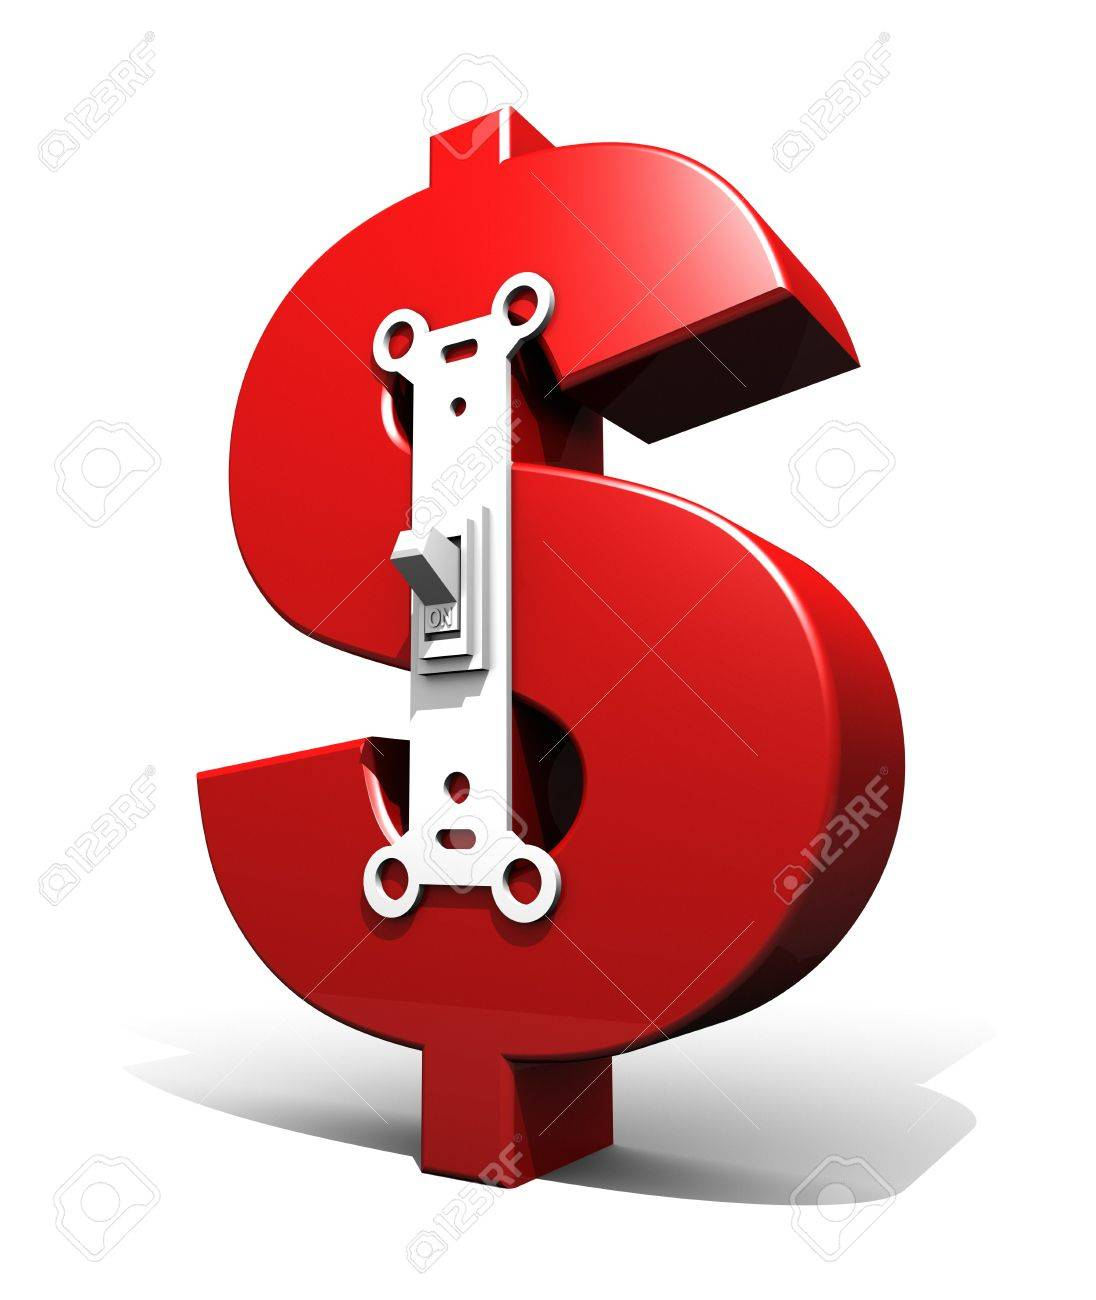 3D Render Illustration Of Large Red Dollar Symbol With A Light/power ...